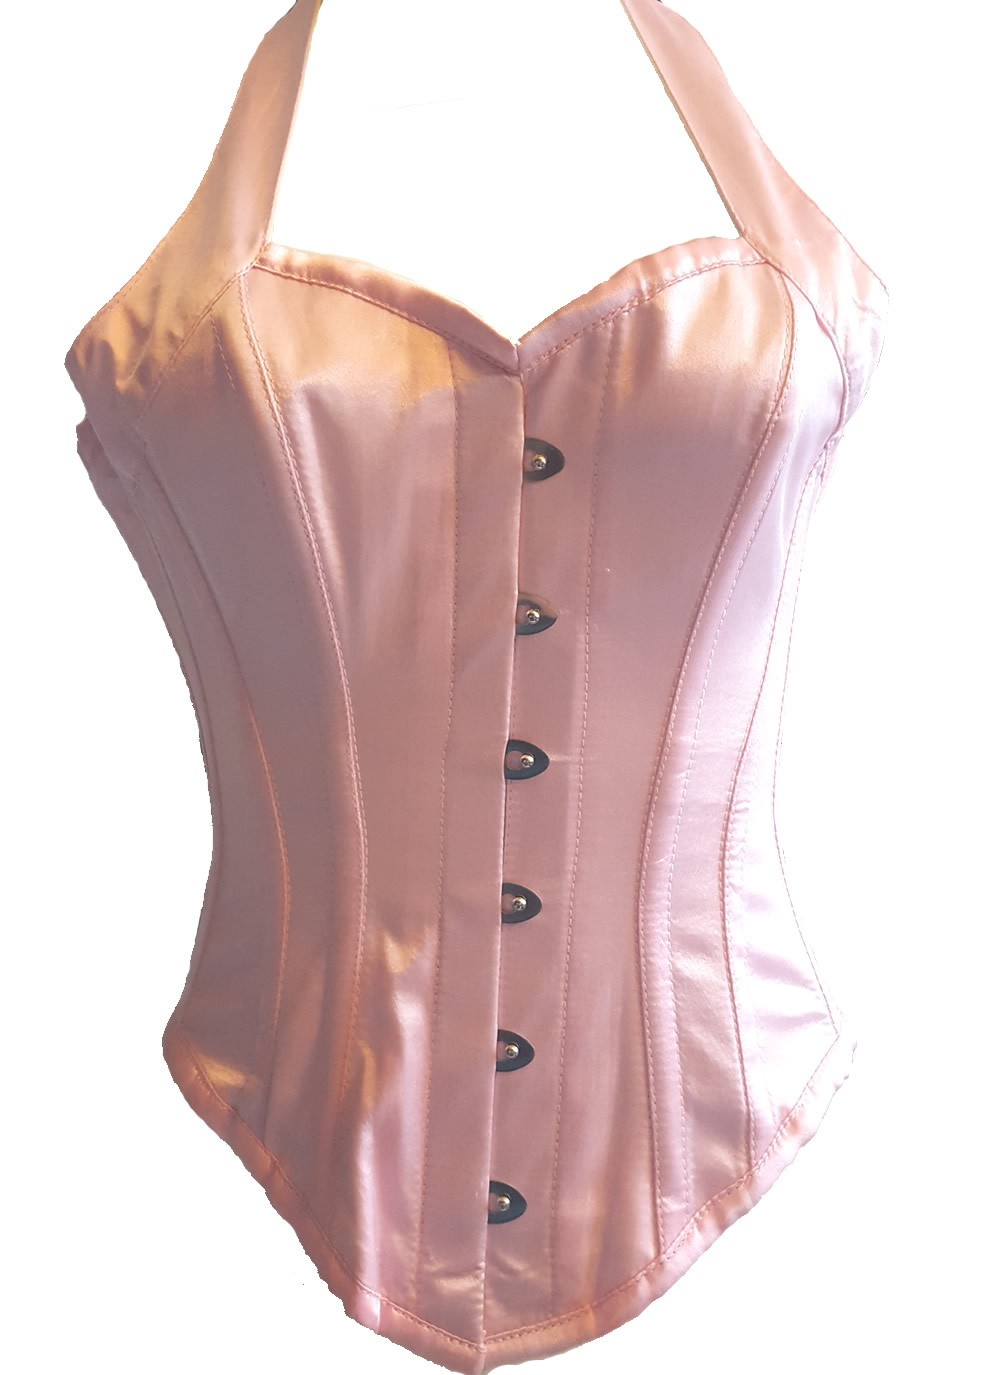 Authentic Steel Bone Halter Corset - pink